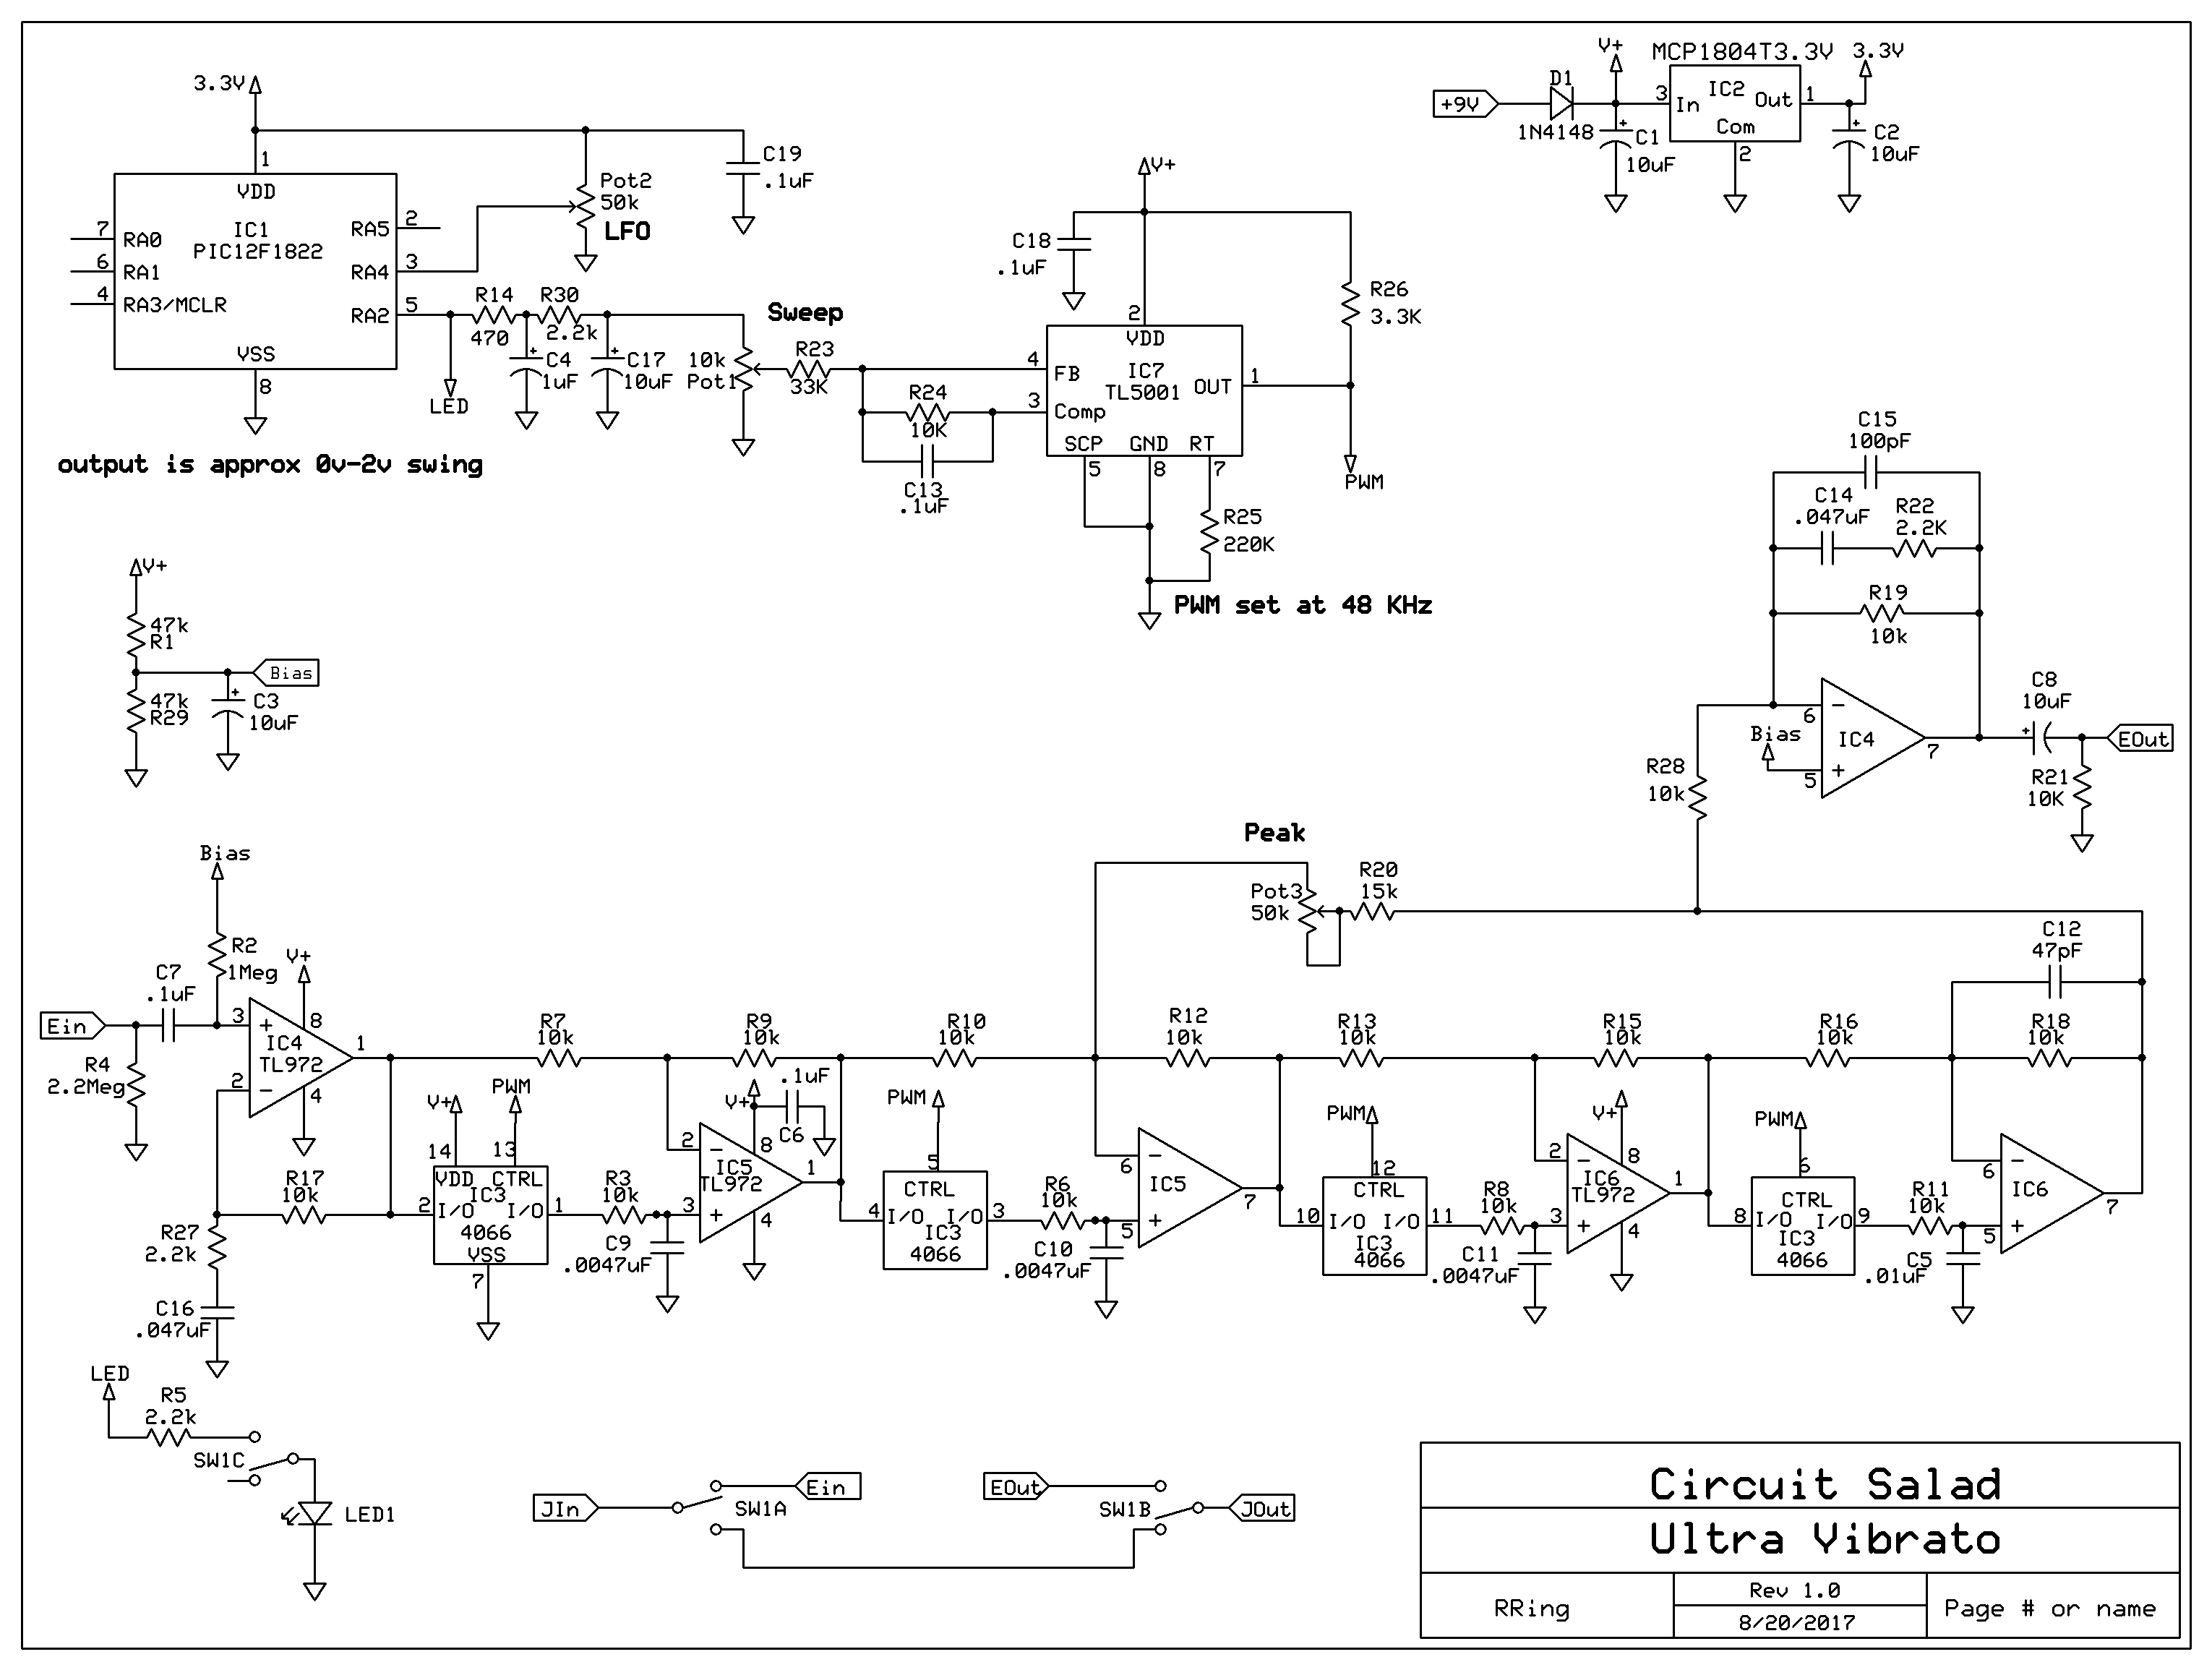 Circuit Salad Electronics From Conception To Completion Noise Meter Link Schematic